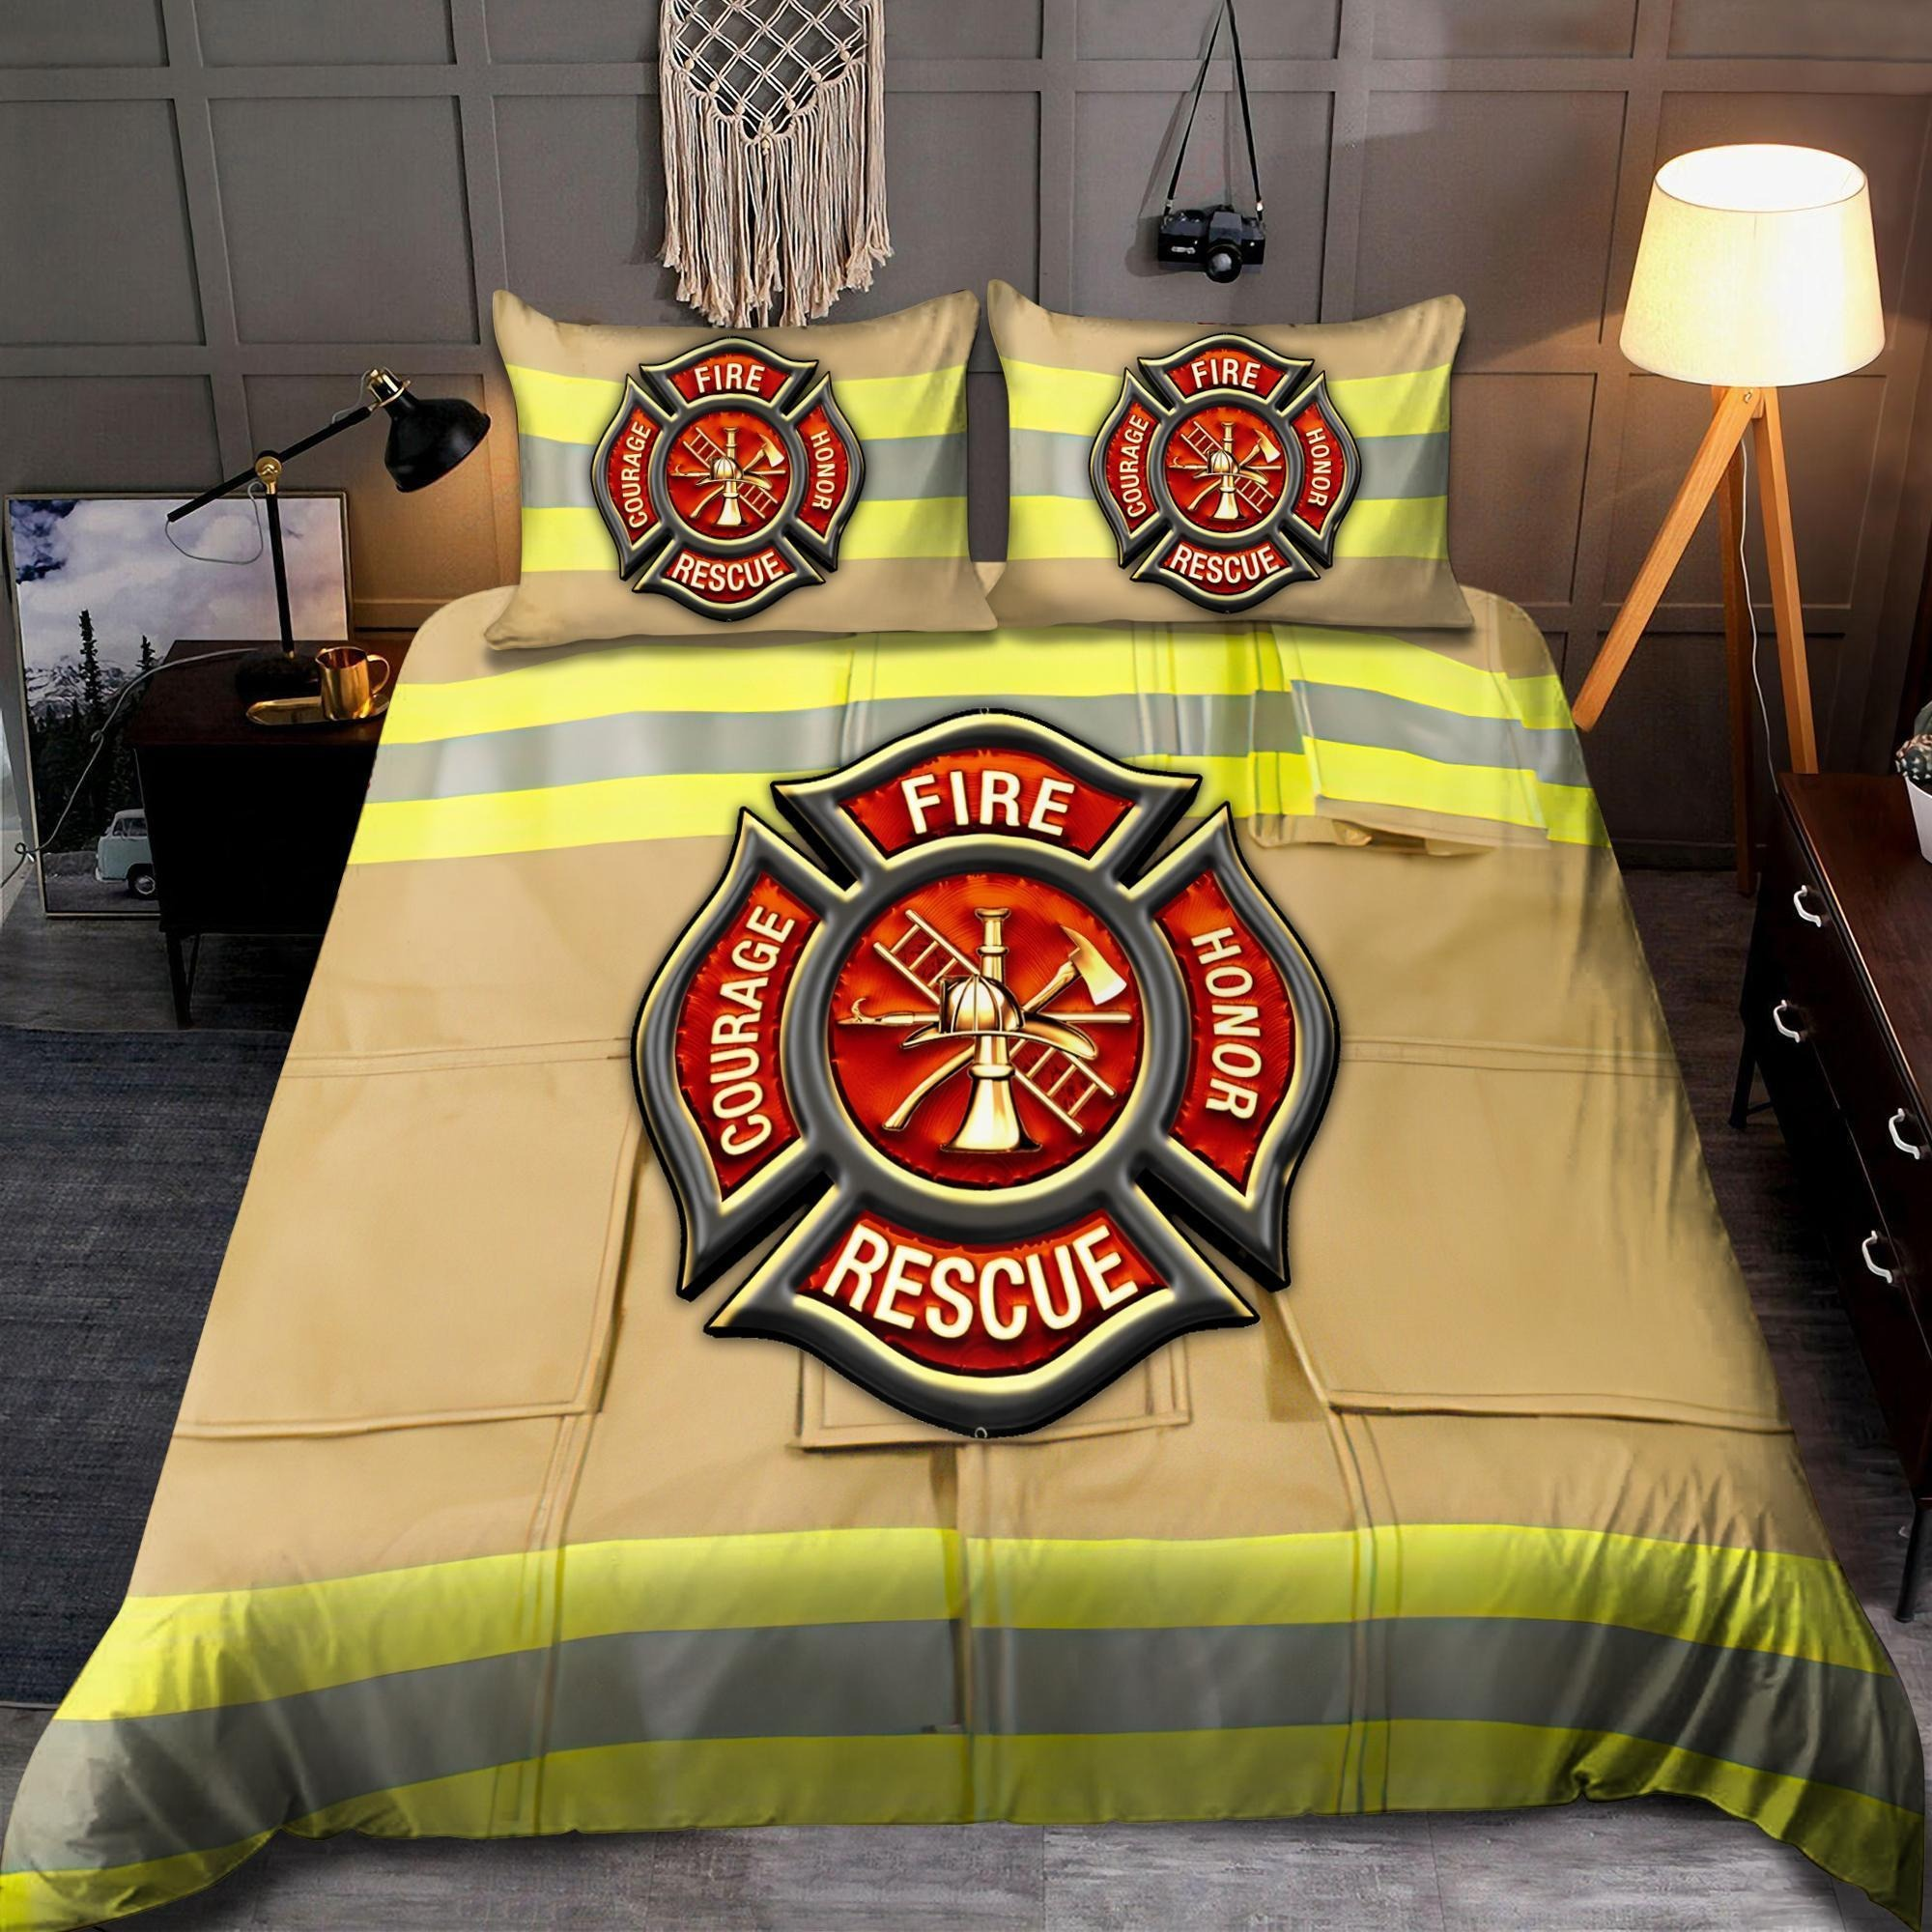 Firefighter Fire Honor Rescue Courage bedding set2